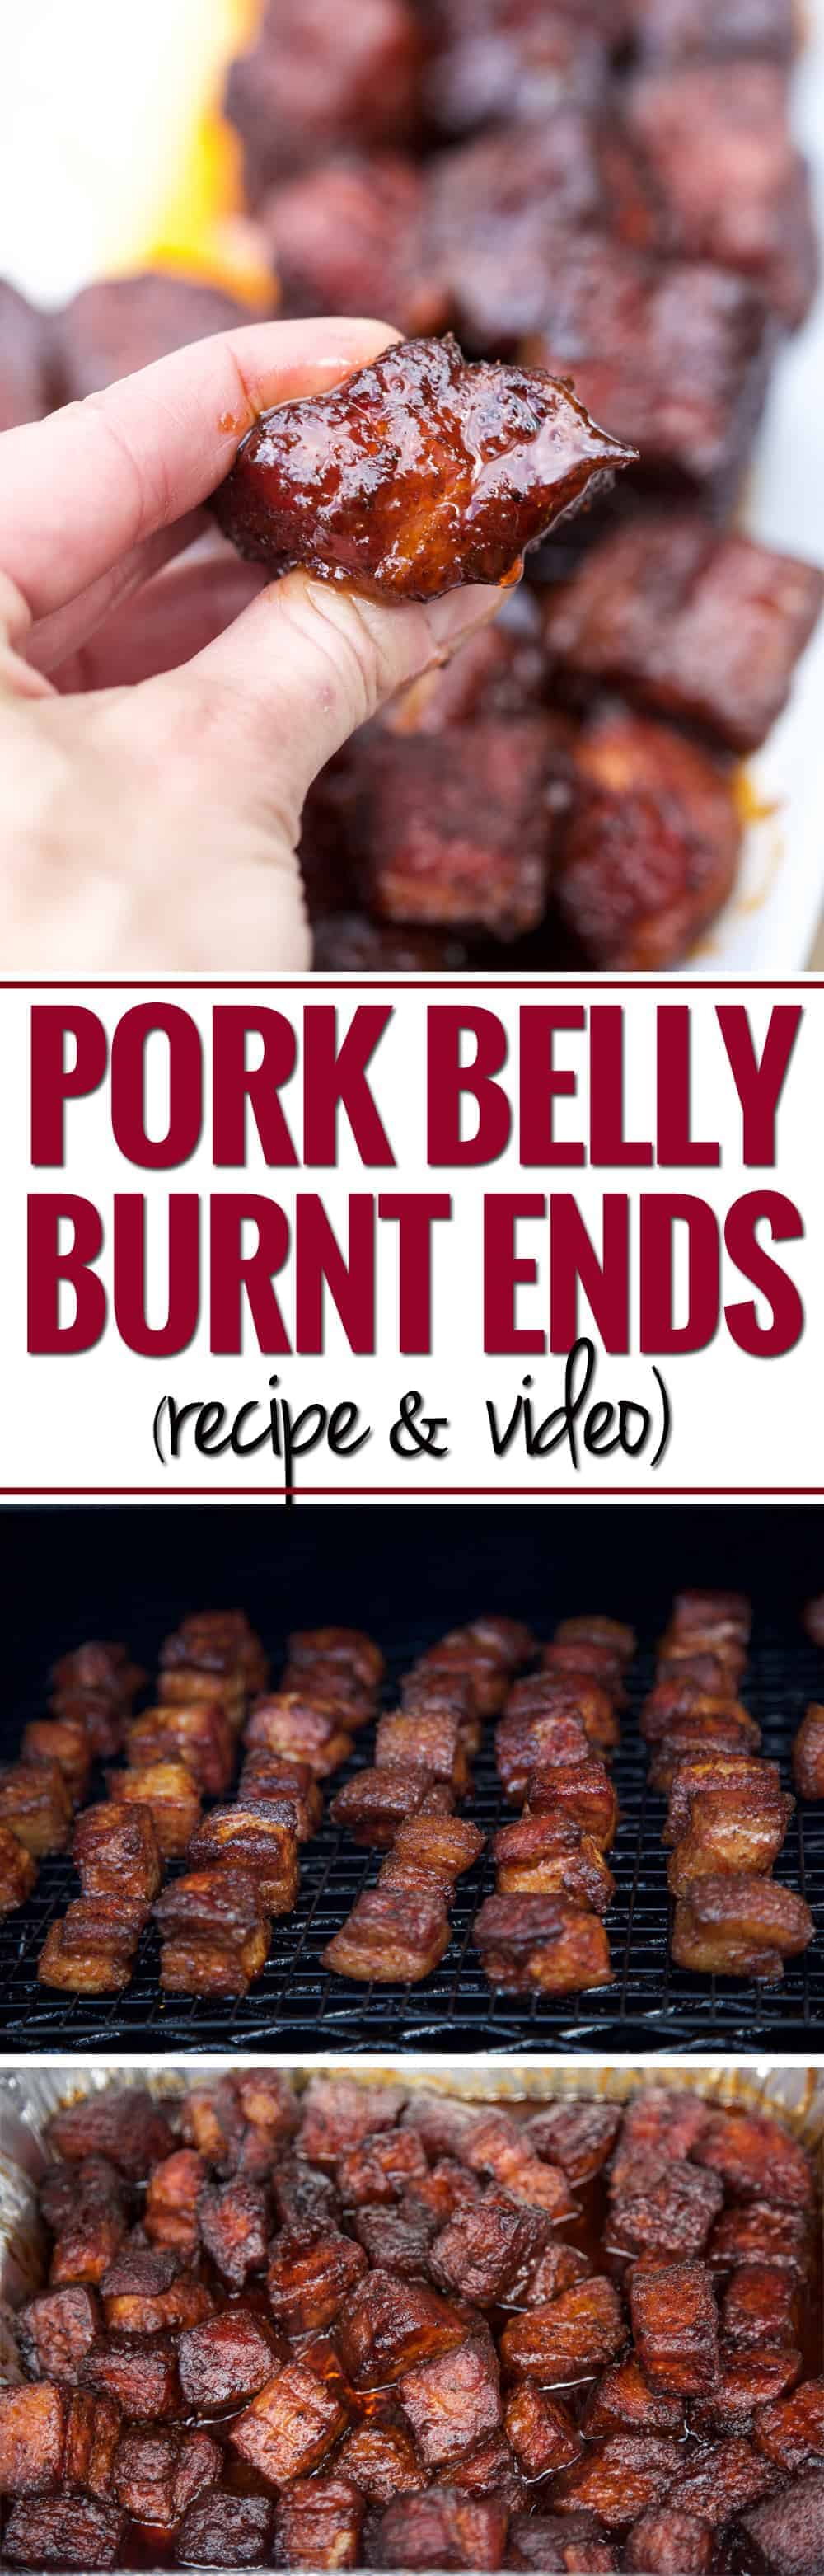 For More Tasty Recipes, Bbq Tips And Tricks, Check Out The Recipe Index